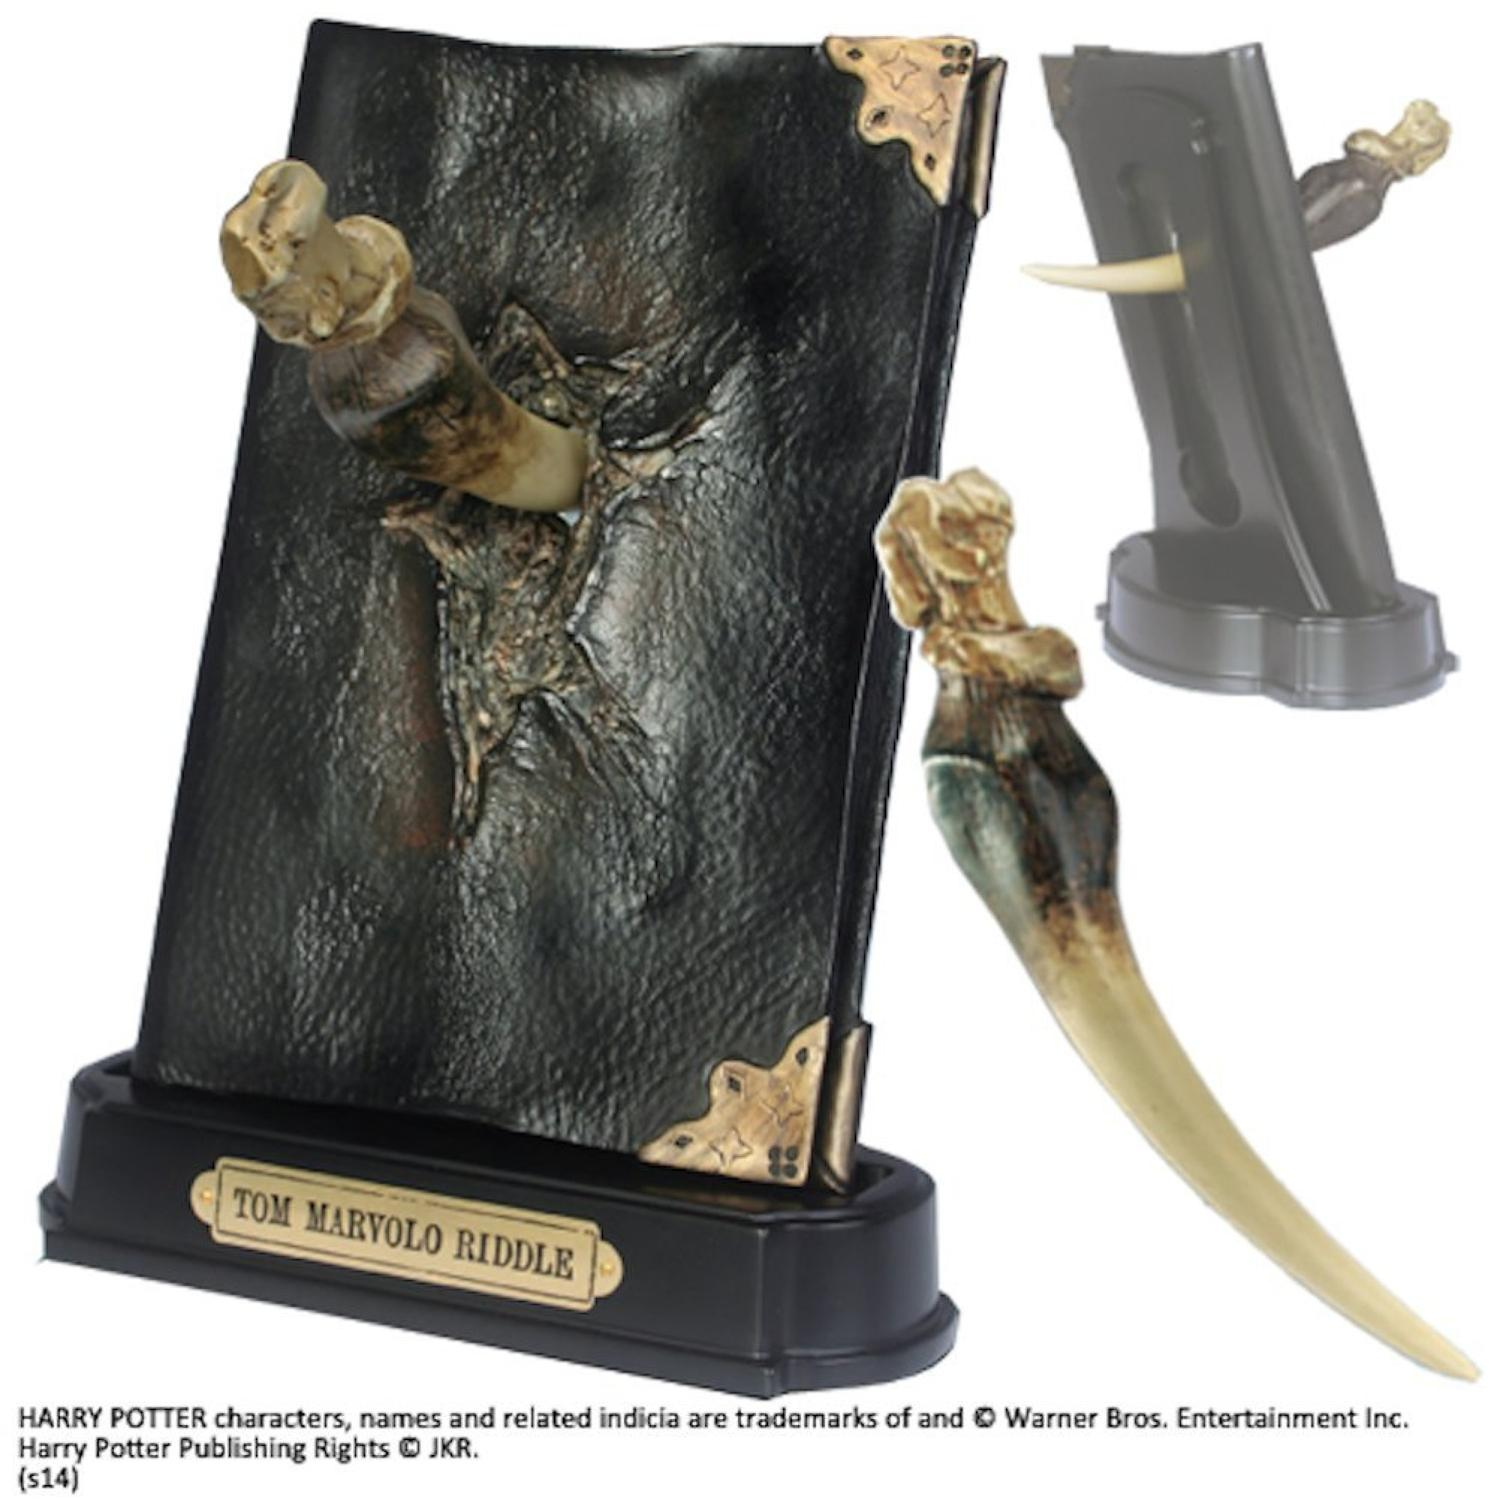 Harry Potter - Tom Riddle's Diary and Basilisk Fang